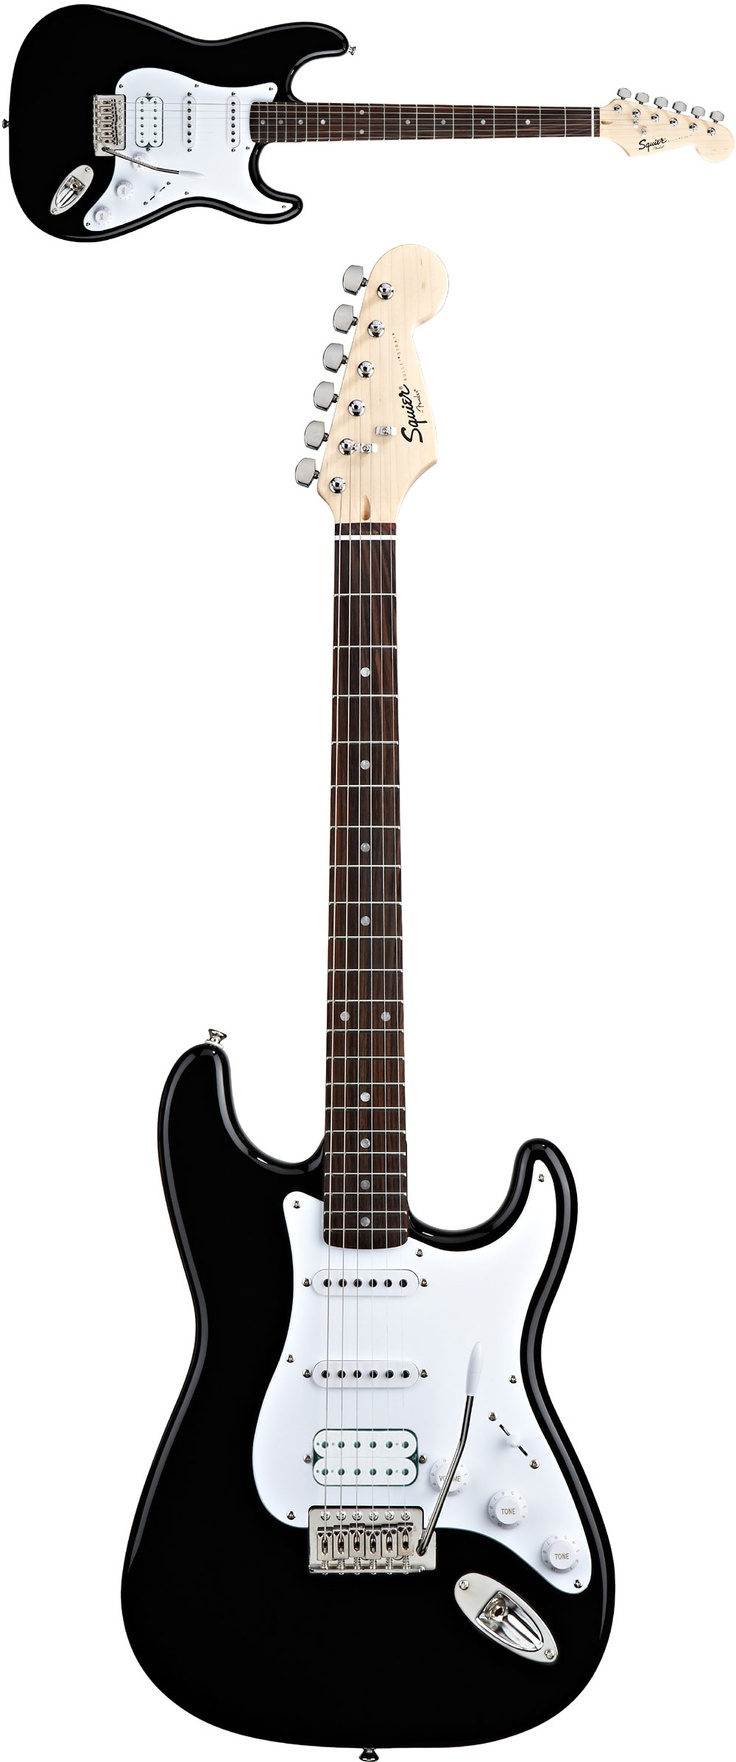 Fender Squire Bullet, for the times I wanna be 14 and in a garage band again...